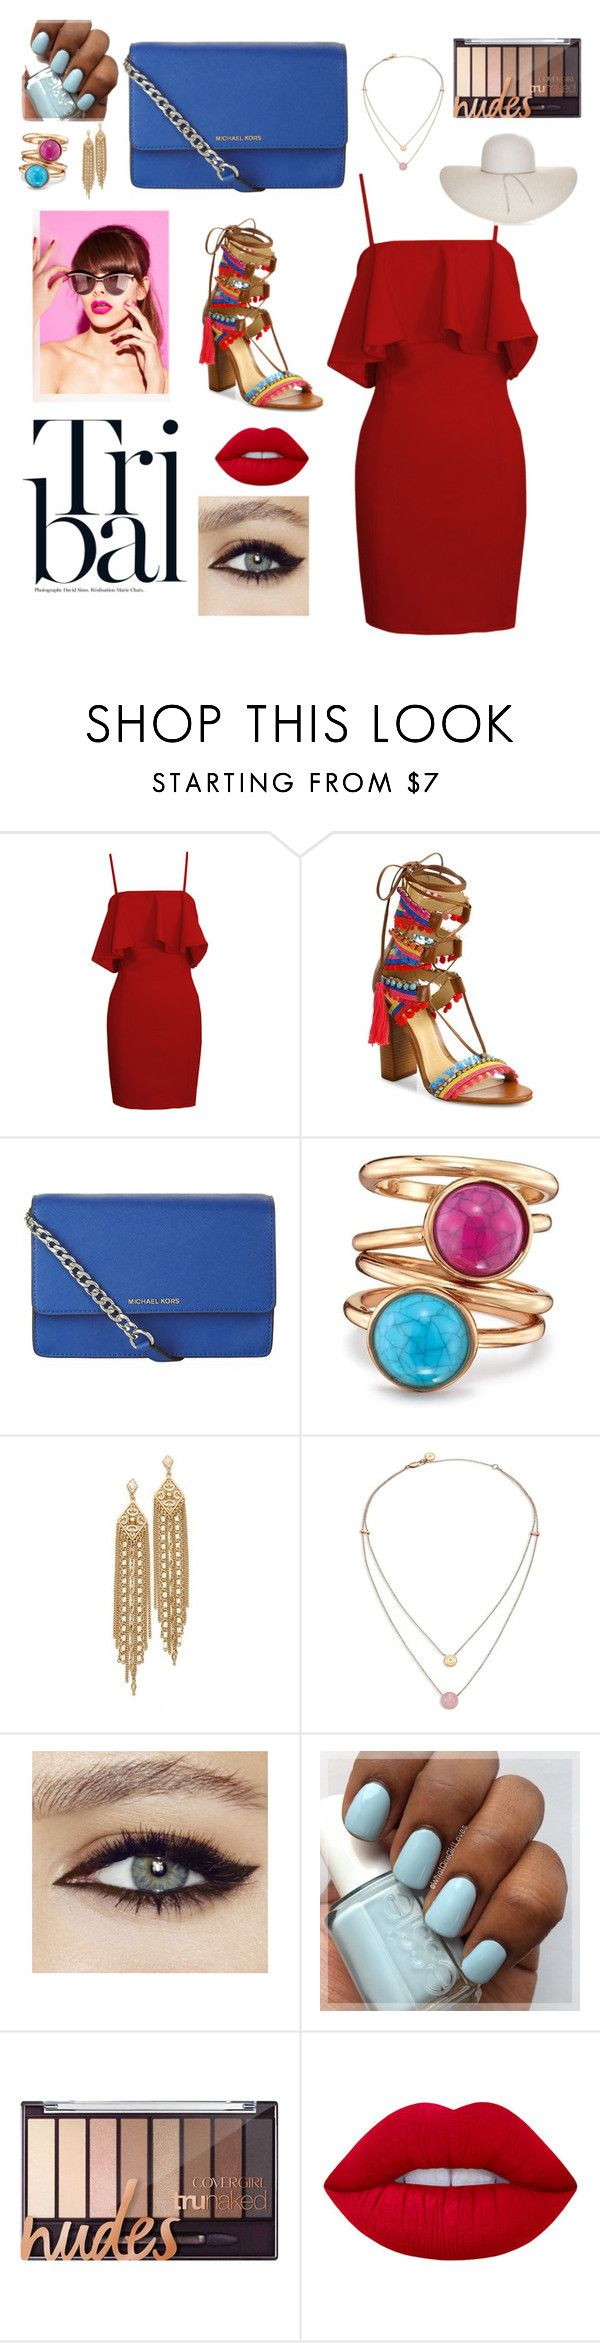 """""""Tribal."""" by emiam ❤ liked on Polyvore featuring Schutz, MICHAEL Michael Kors, Avon, Capwell + Co, Michael Kors, Lime Crime and Nine West"""